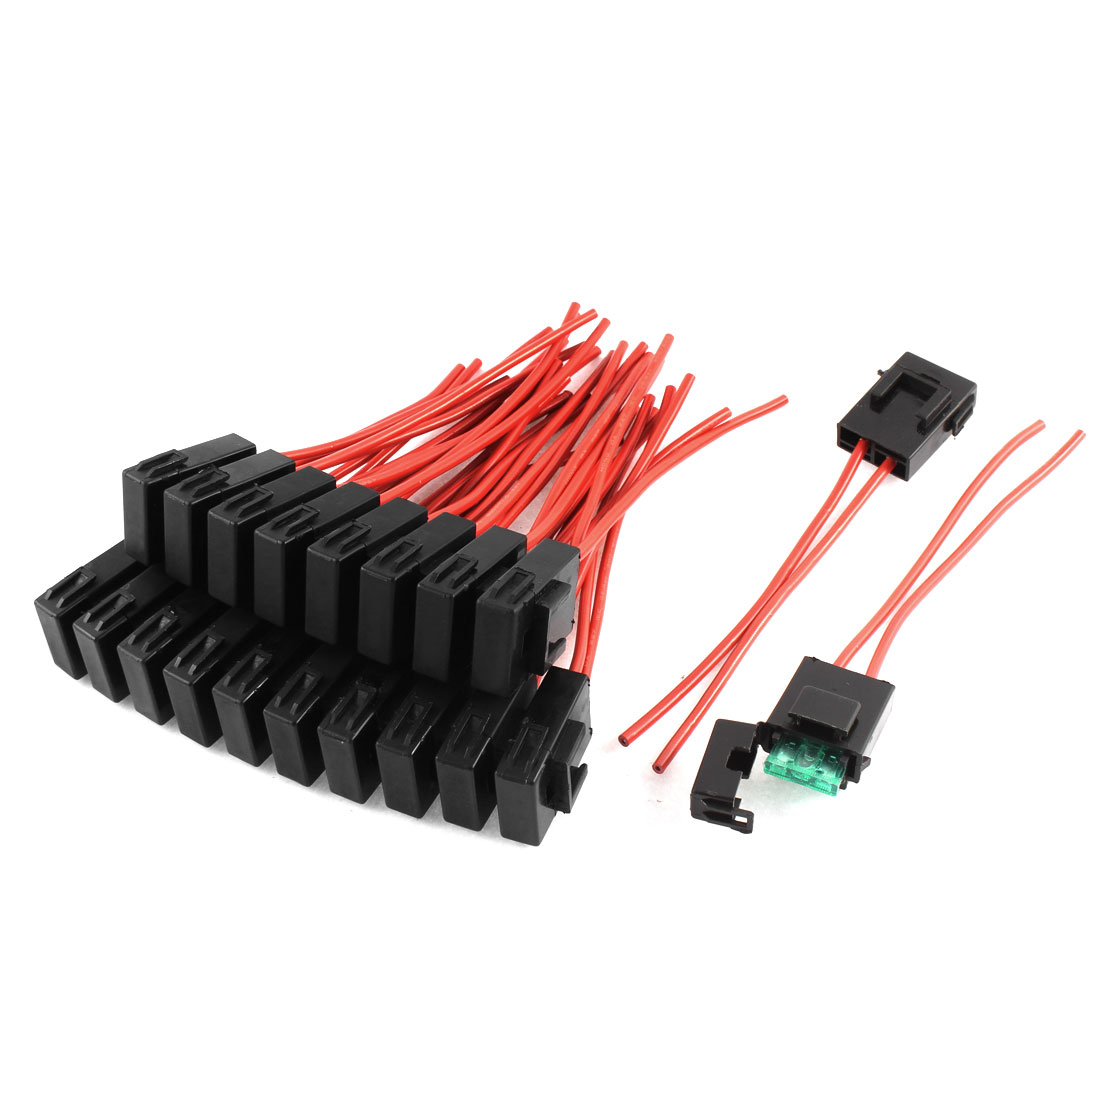 20 Pcs Car Boat Truck AWG Wire Blade Fuse w Plastic Holder Black Red 32V 30A